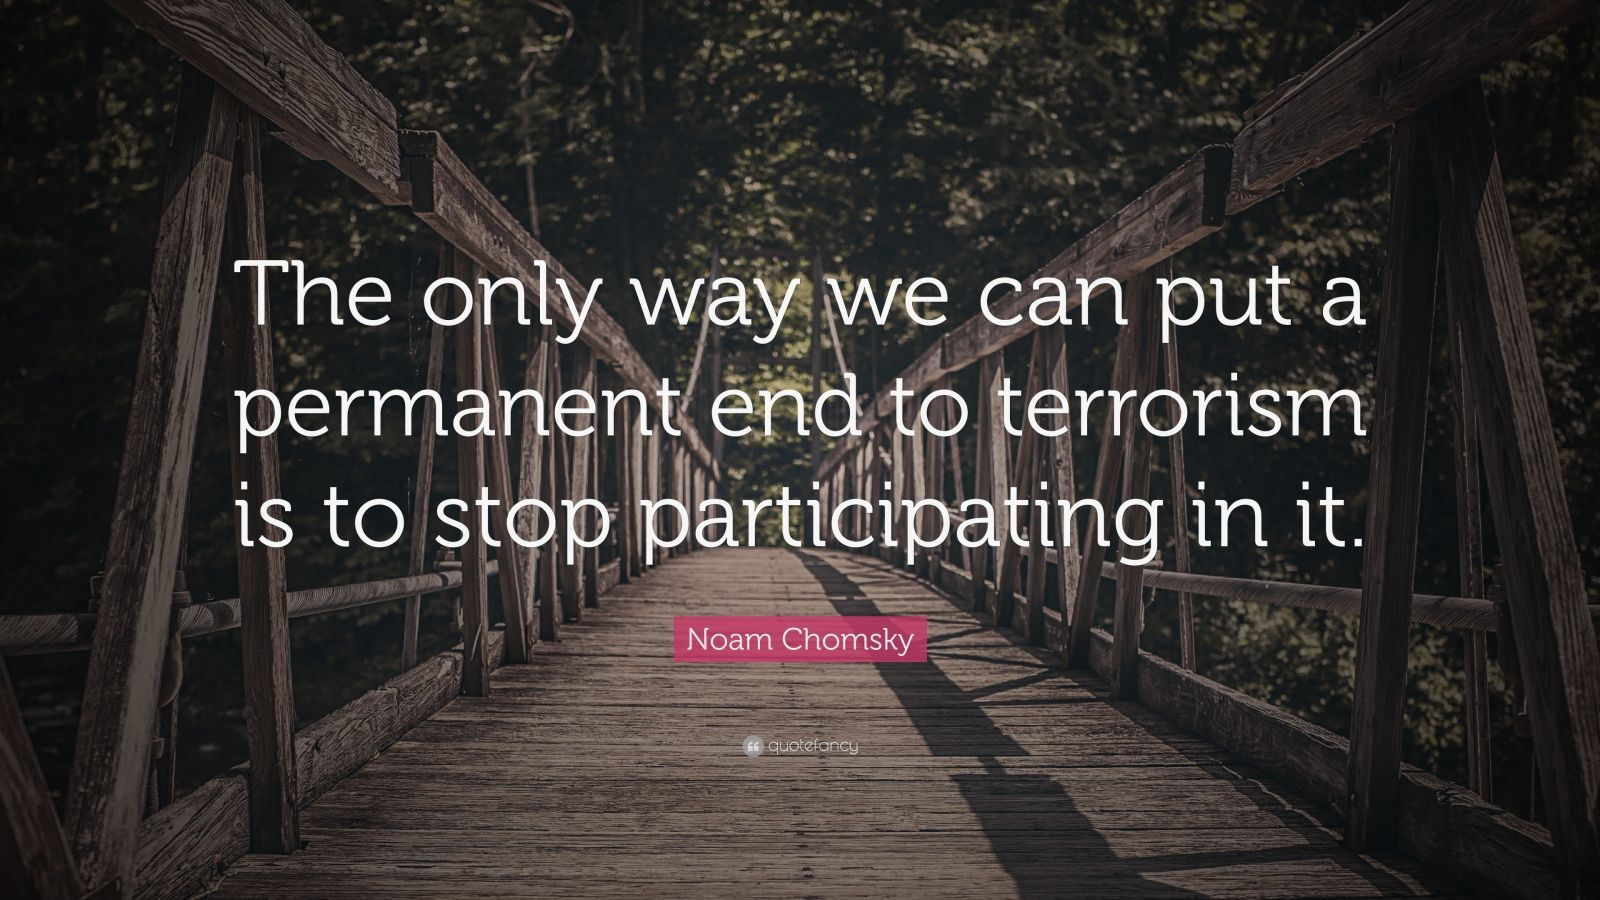 """Noam Chomsky Quote: """"The only way we can put a permanent end to terrorism is to stop participating in it."""""""